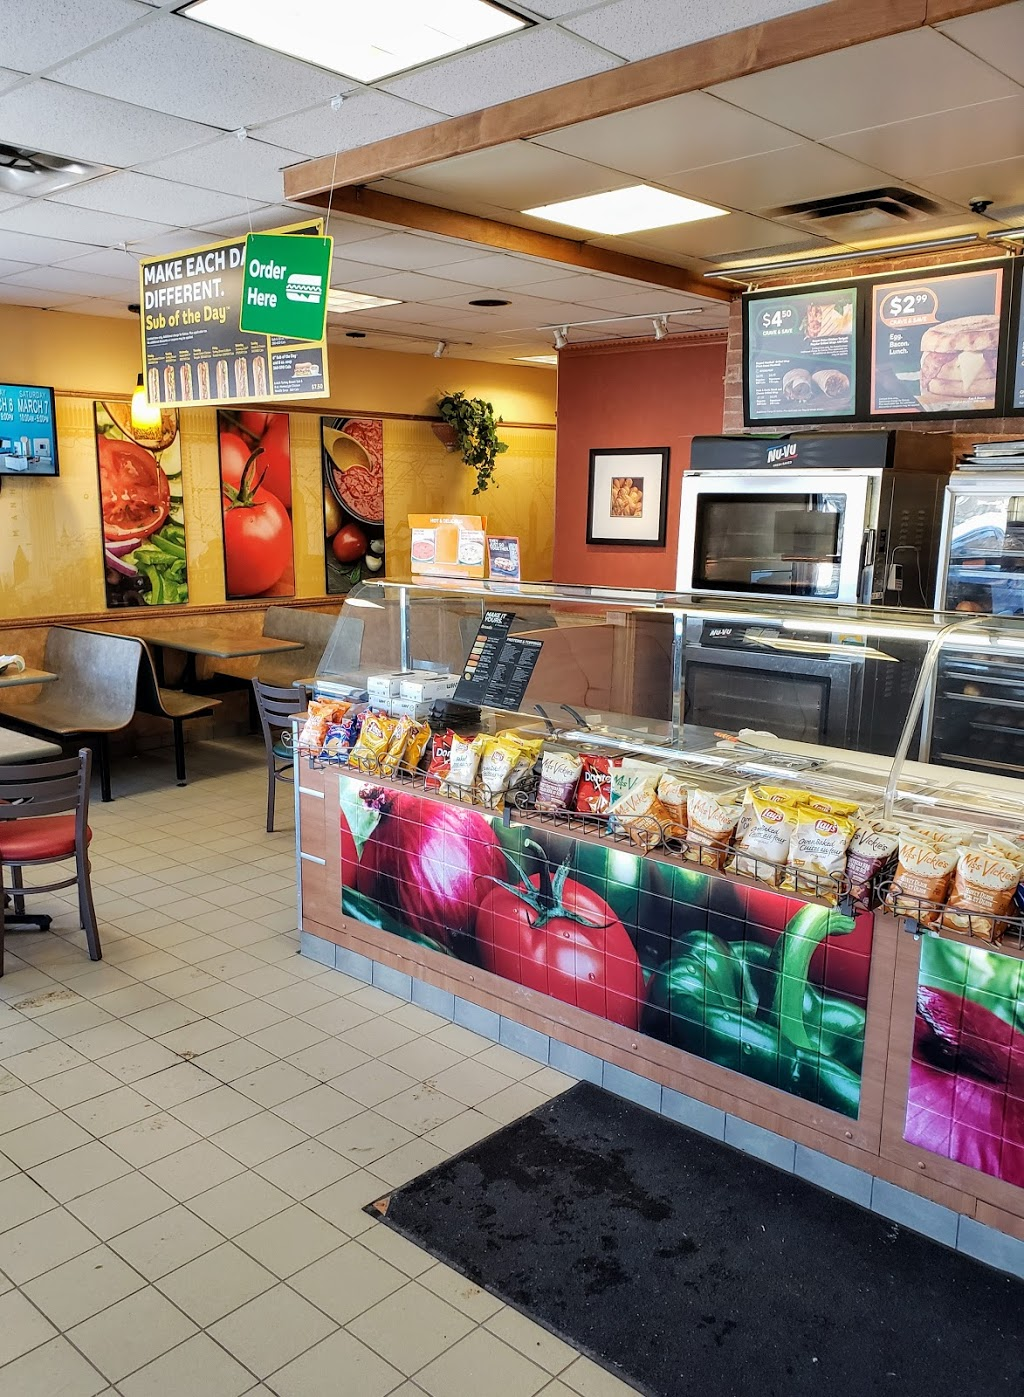 Subway | meal takeaway | 82 4 Ave SE, Carman, MB R0G 0J0, Canada | 2047453698 OR +1 204-745-3698